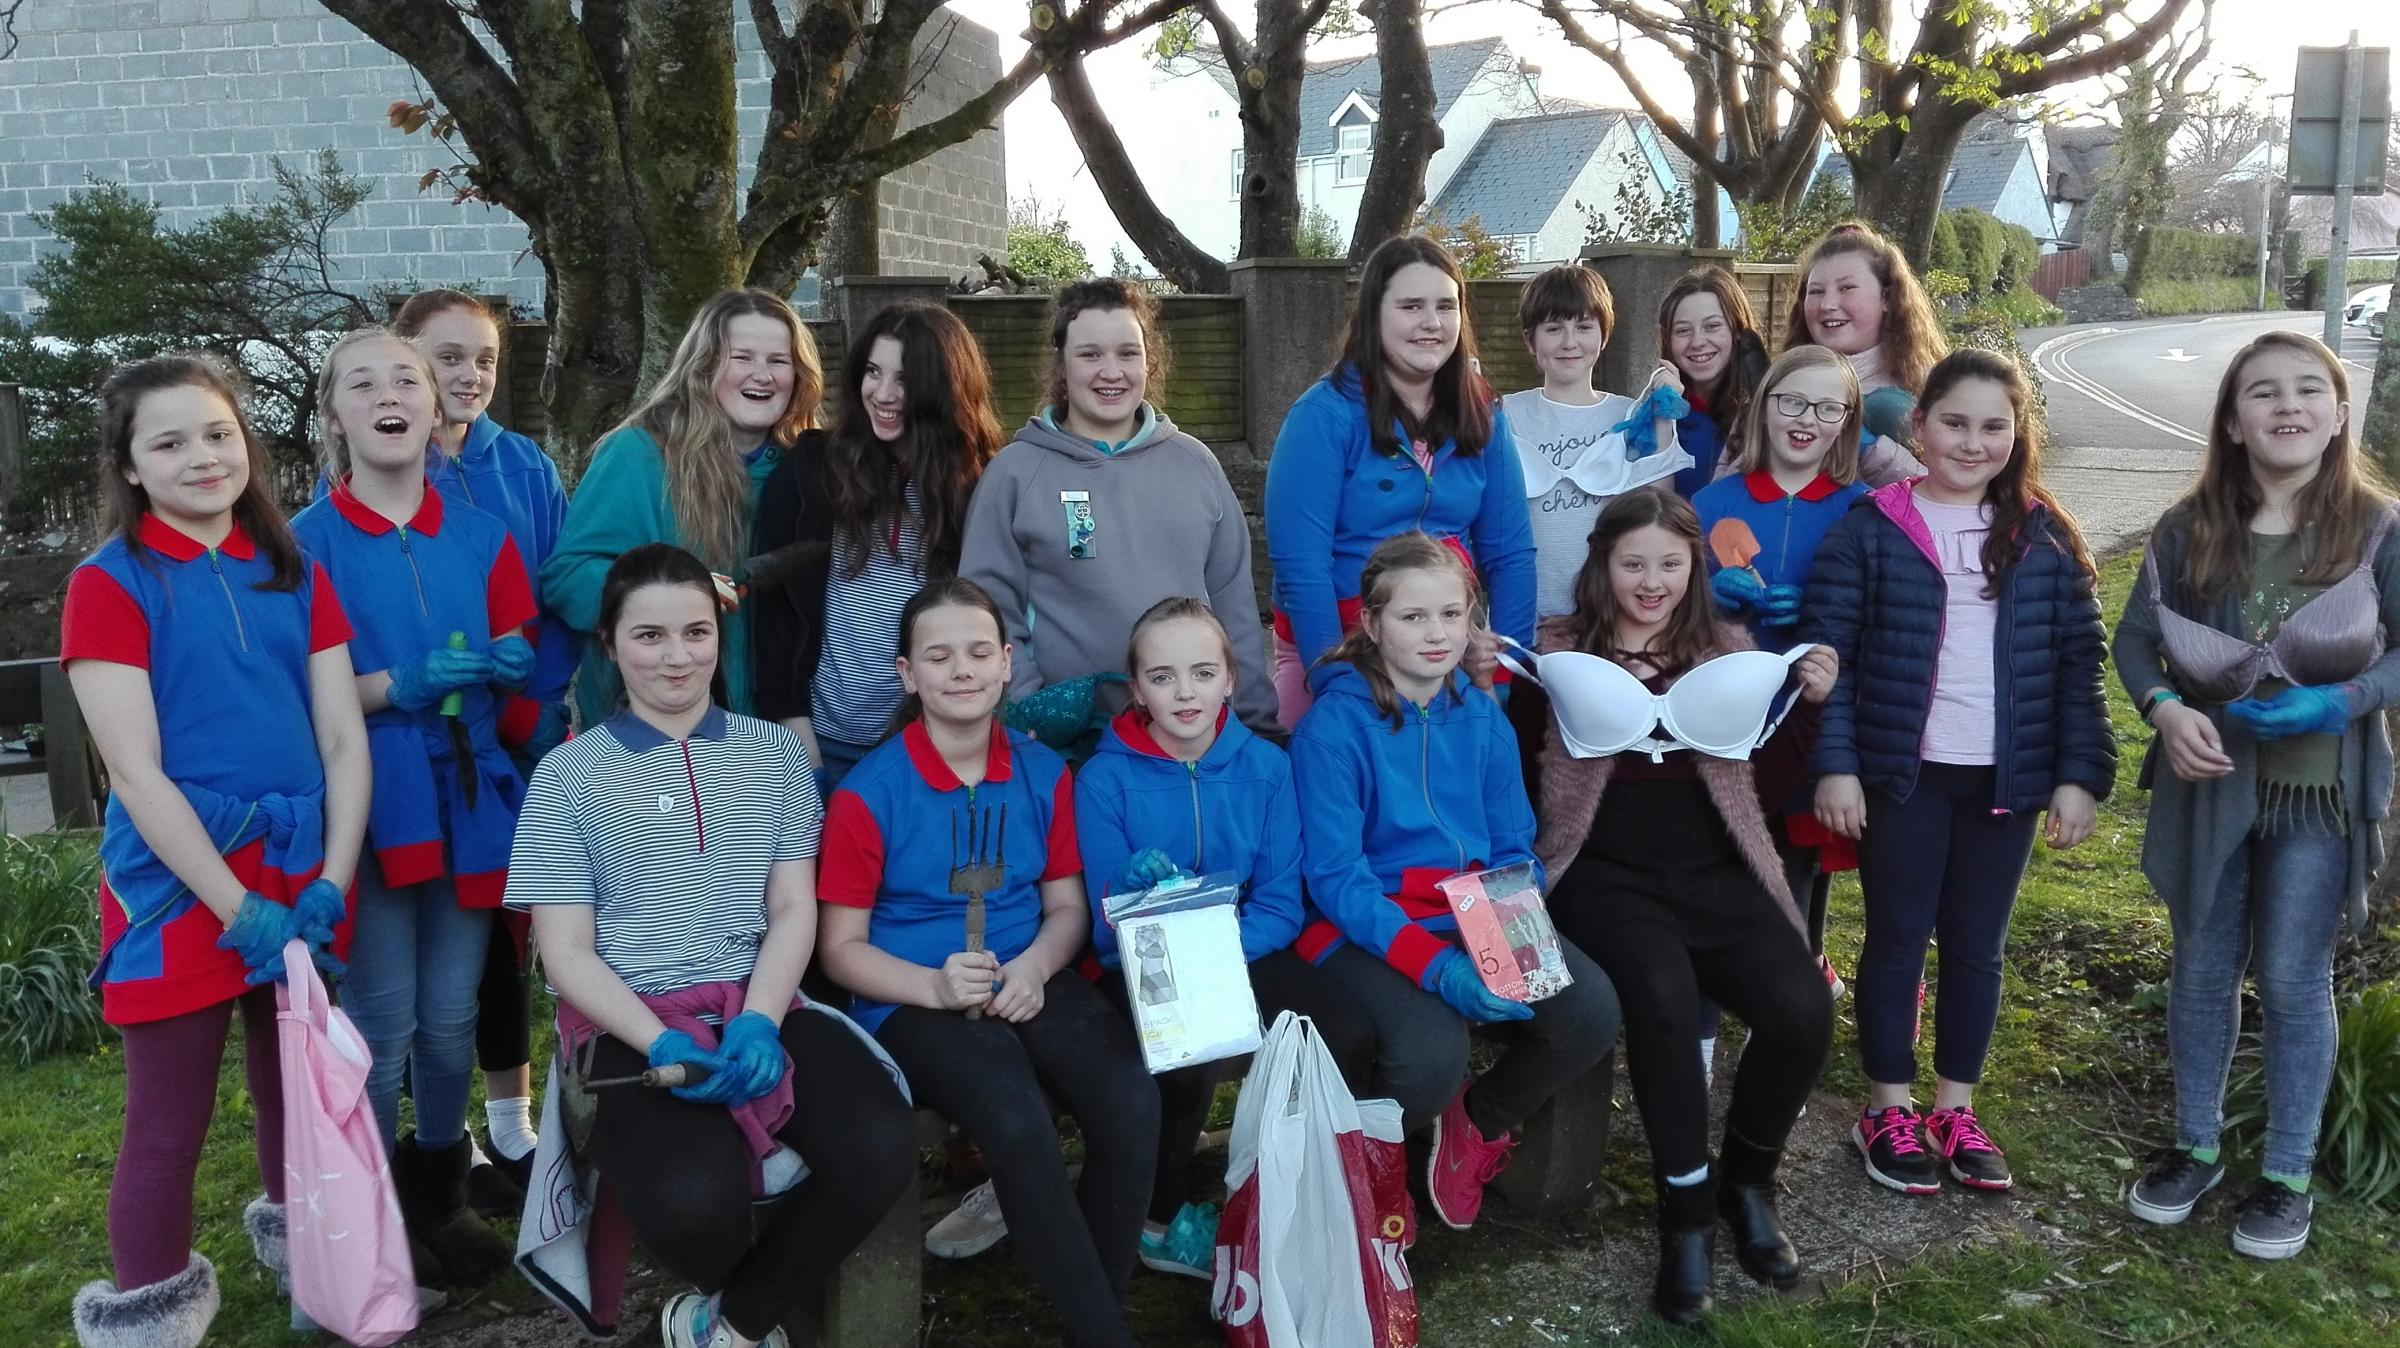 St Issell's Guides are helping Charlotte McAllister show support for the charity Smalls for All..